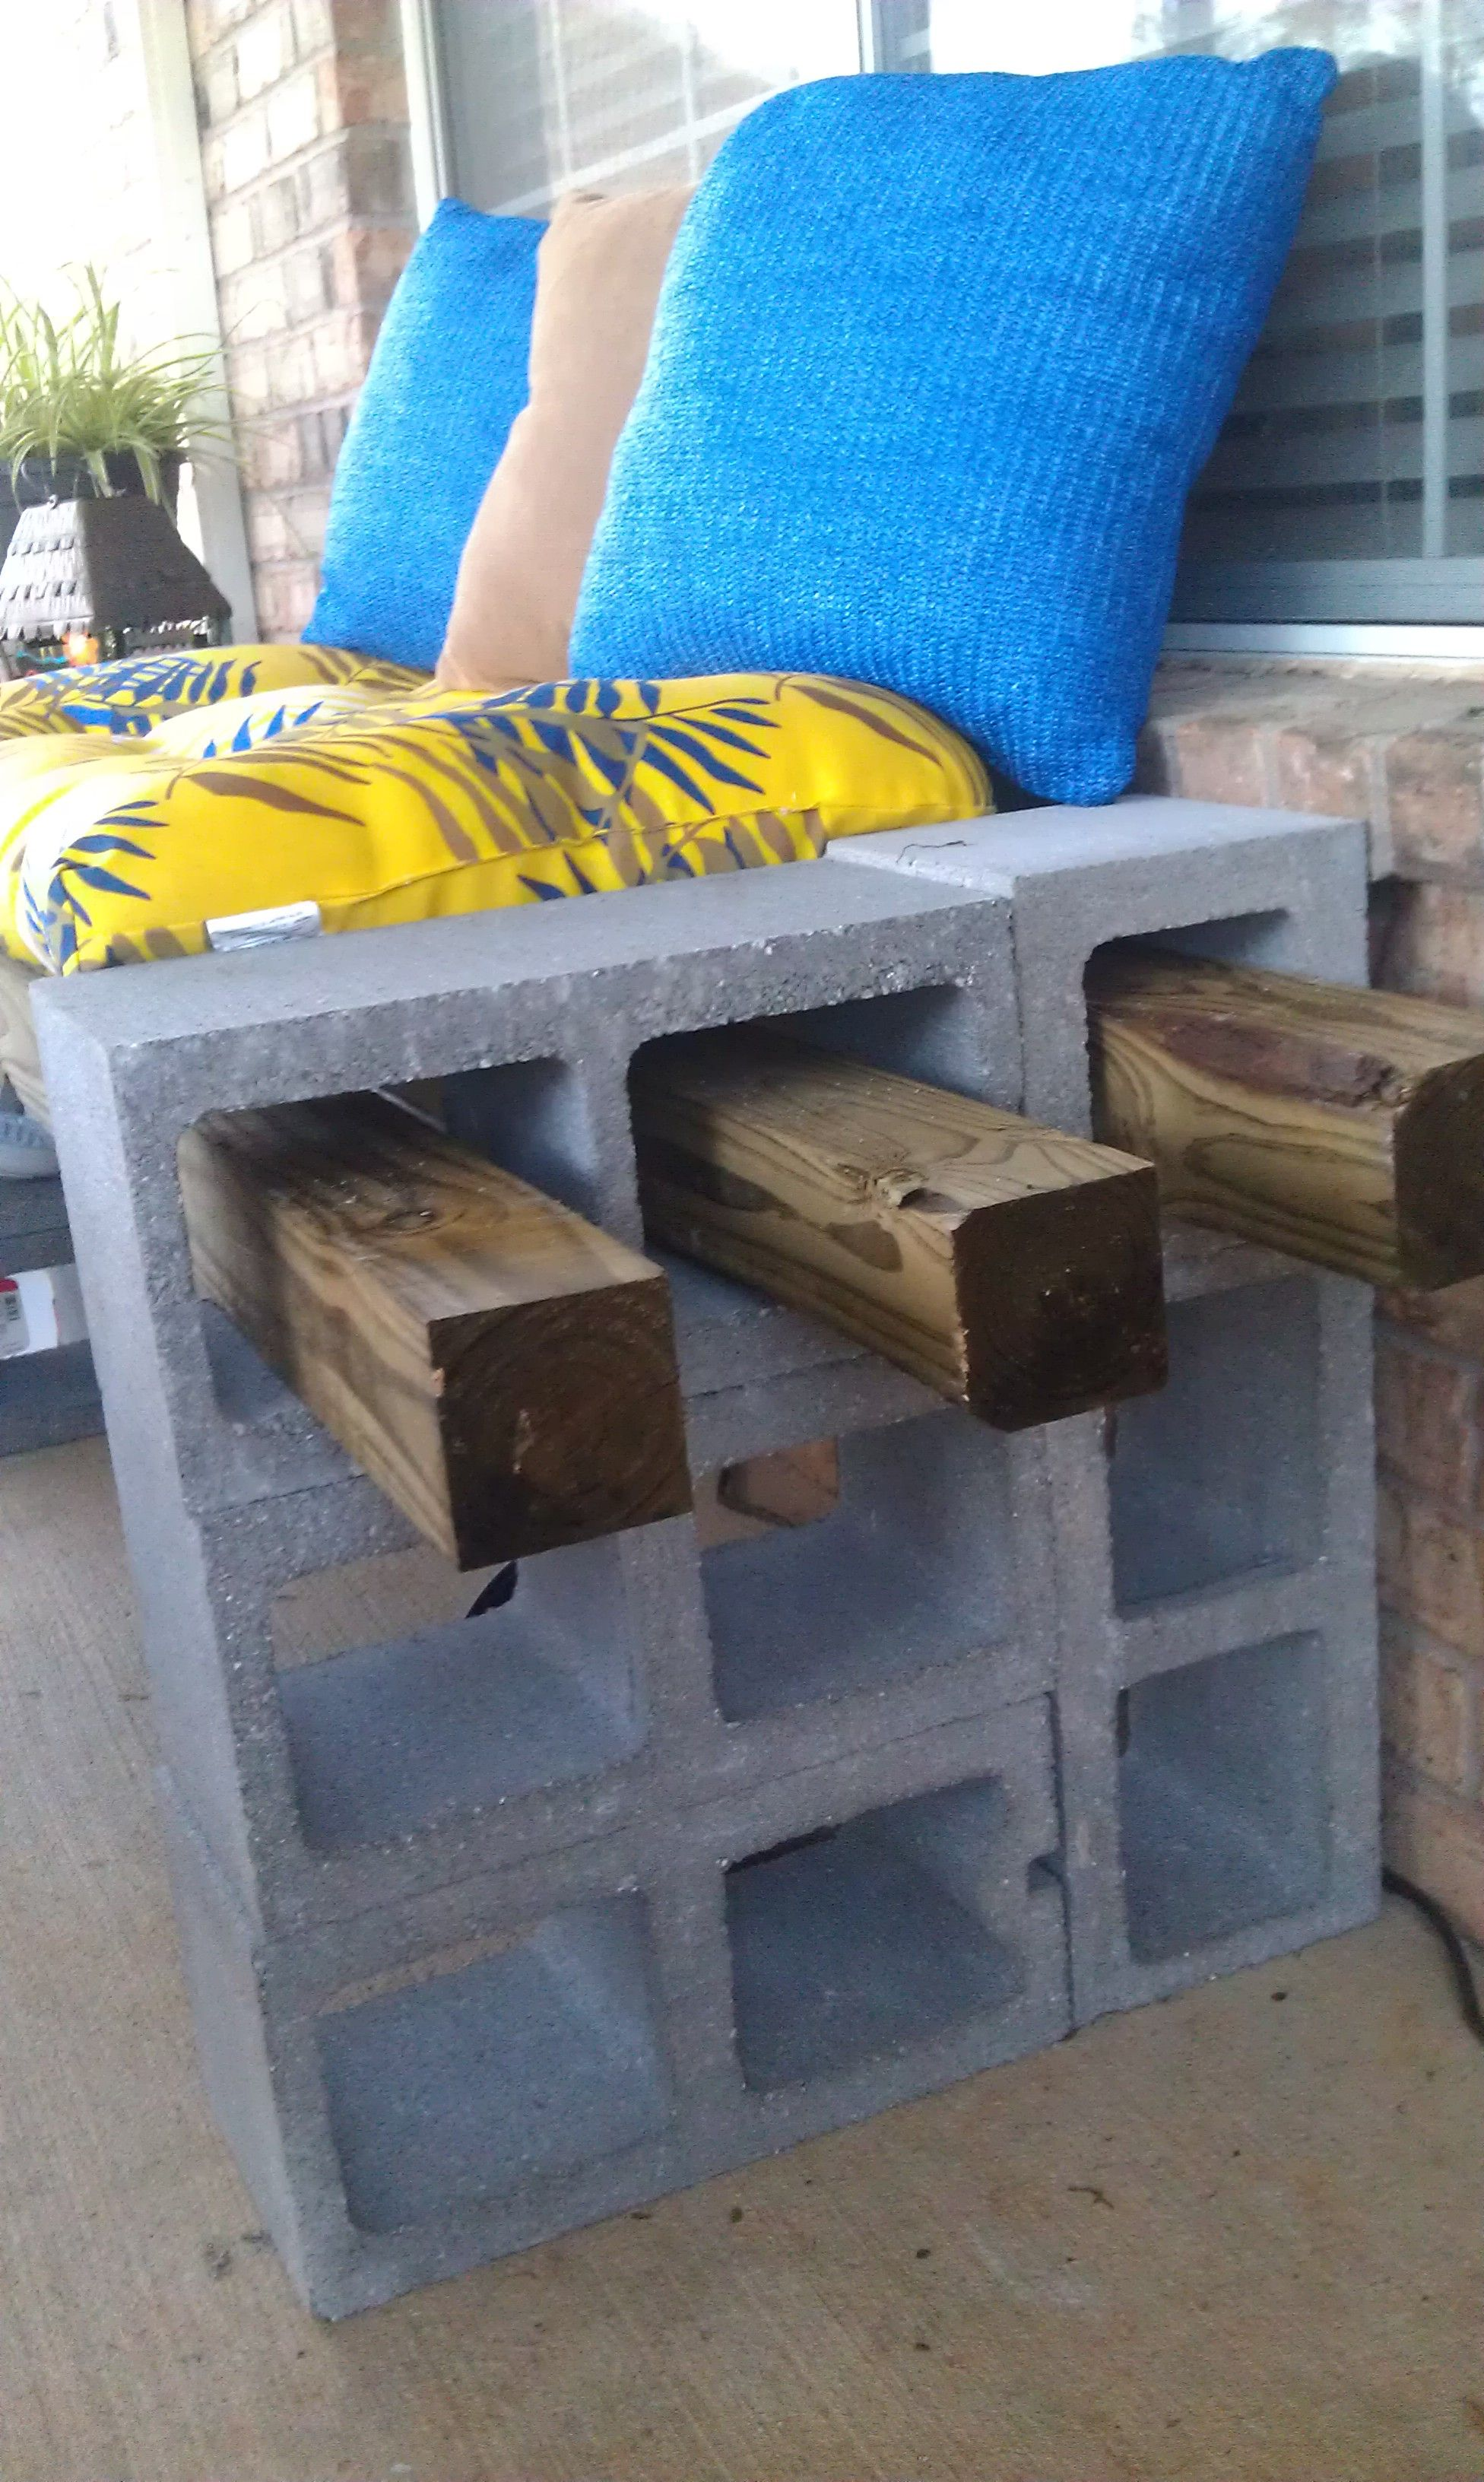 Cinder Block Bench Repurpose Pinterest Cinder Block Bench - Awesome home projects created from concrete cinder blocks